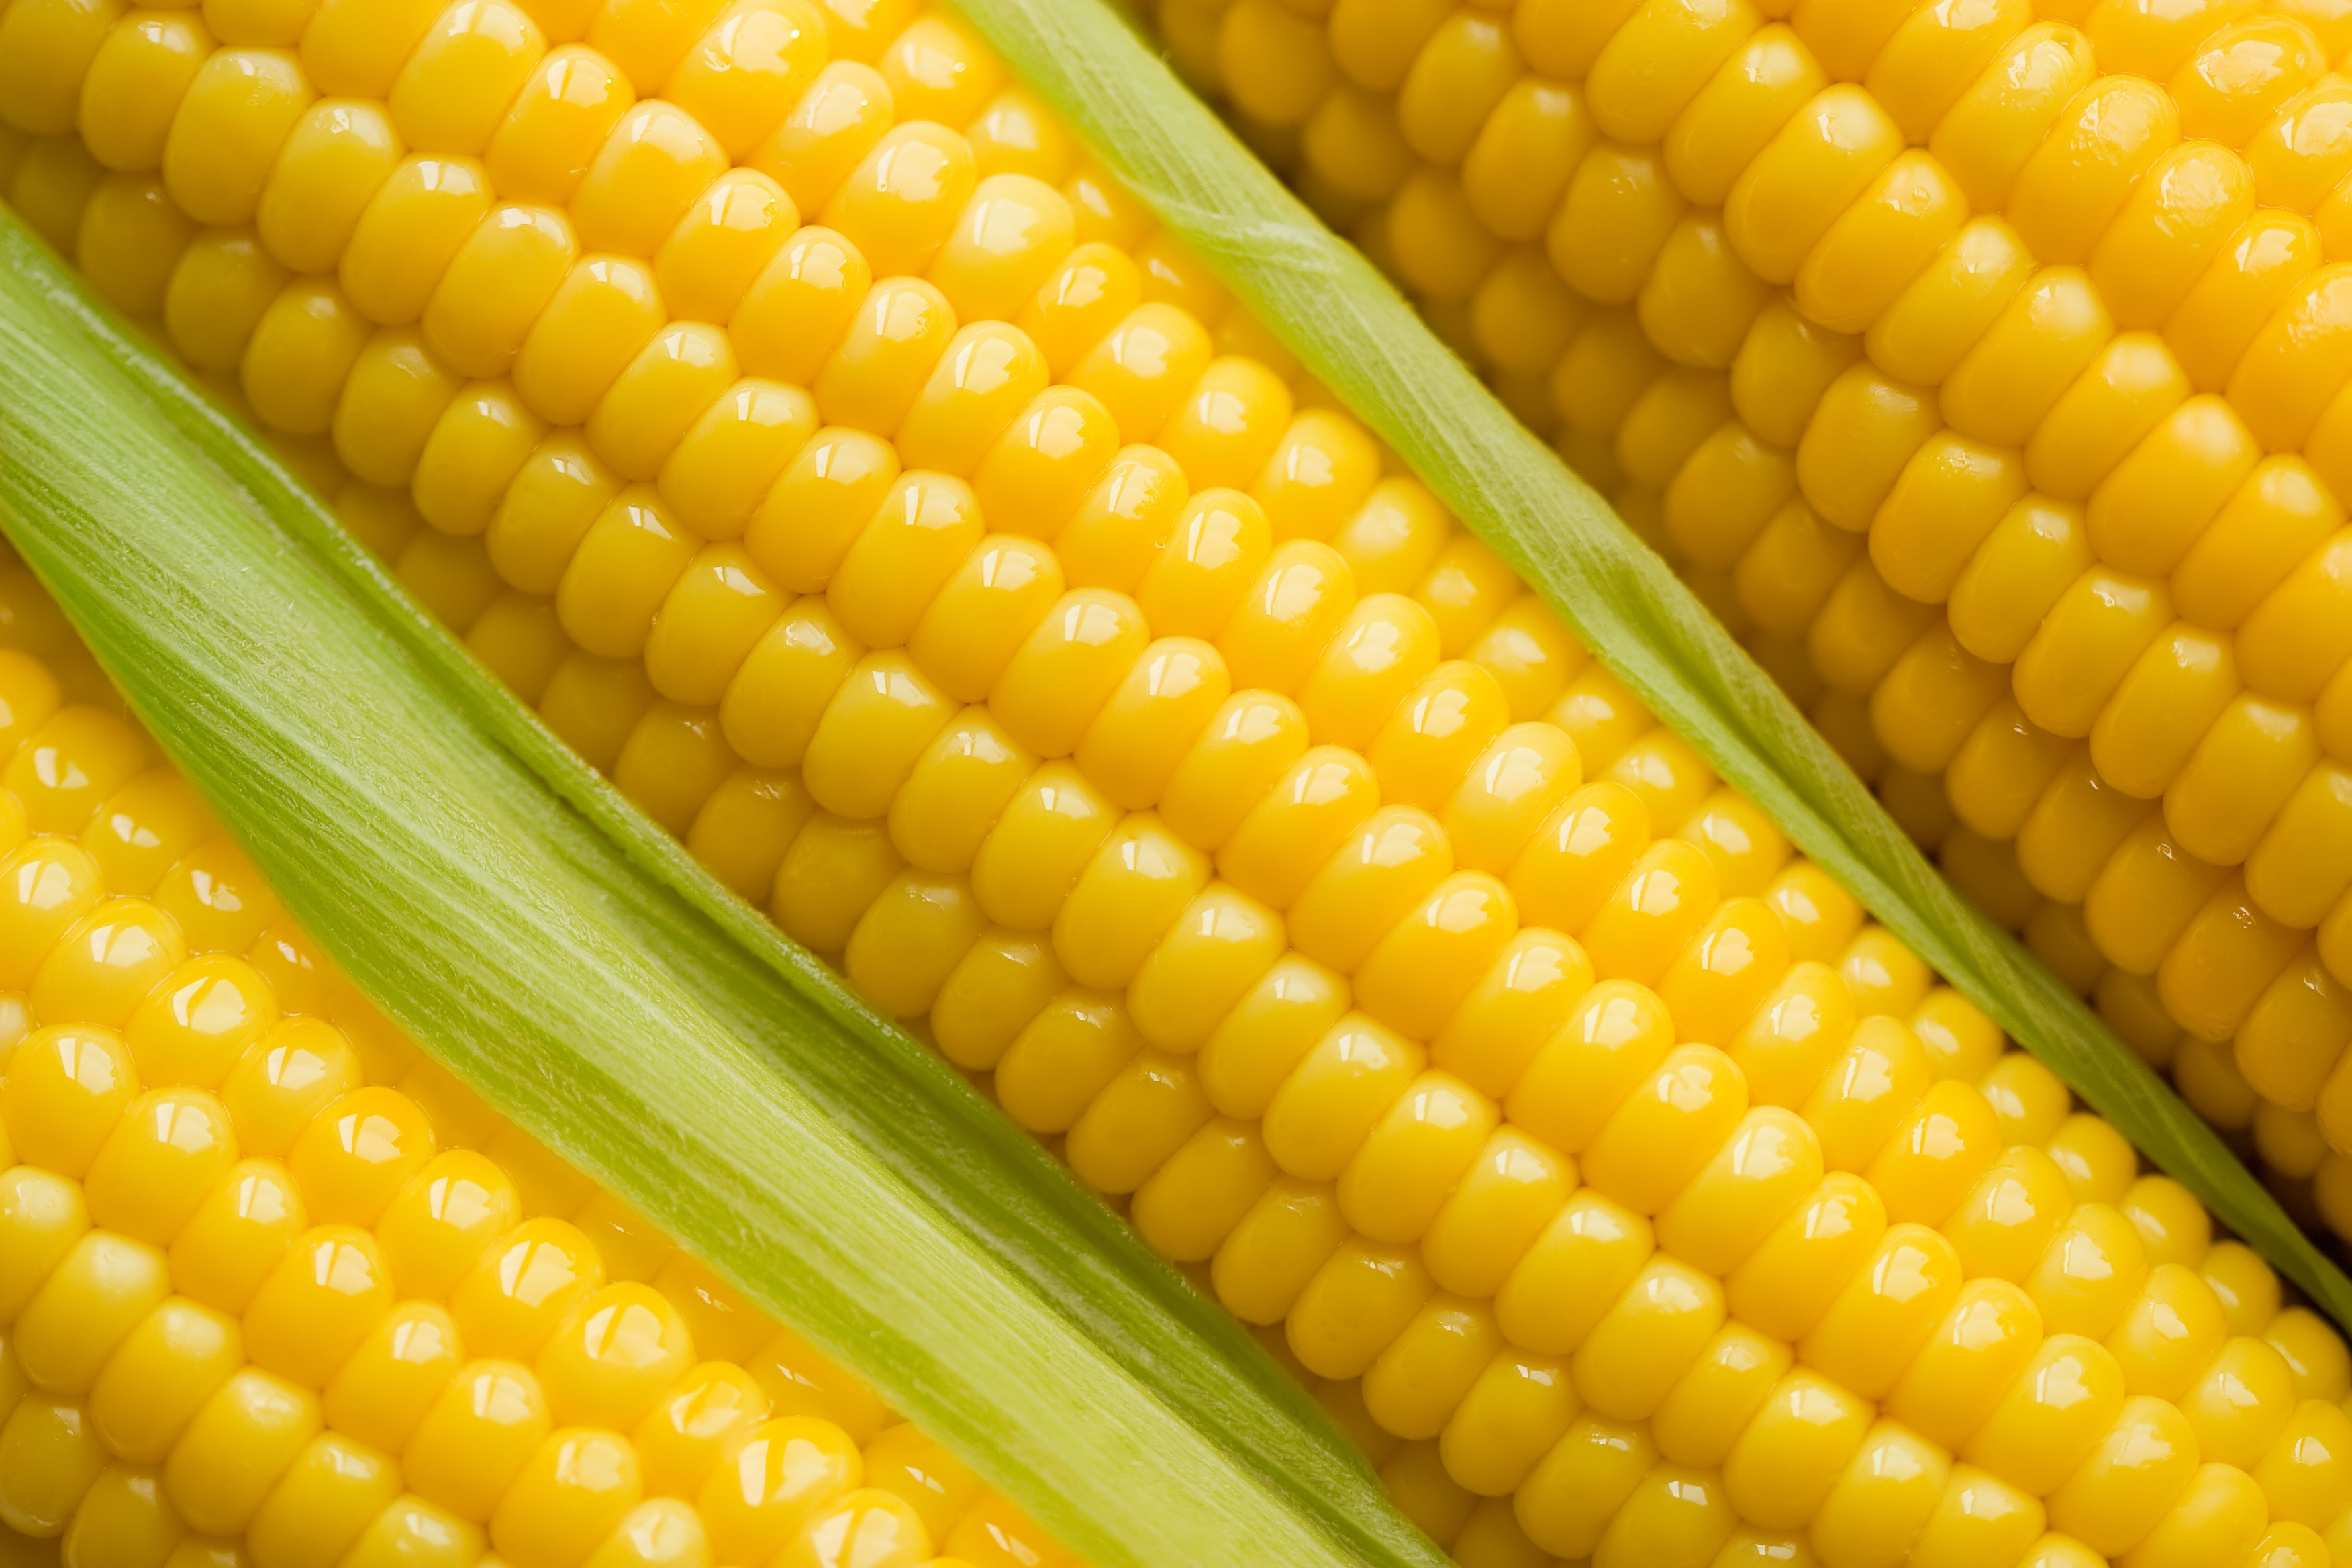 Corn | TARBAX INC